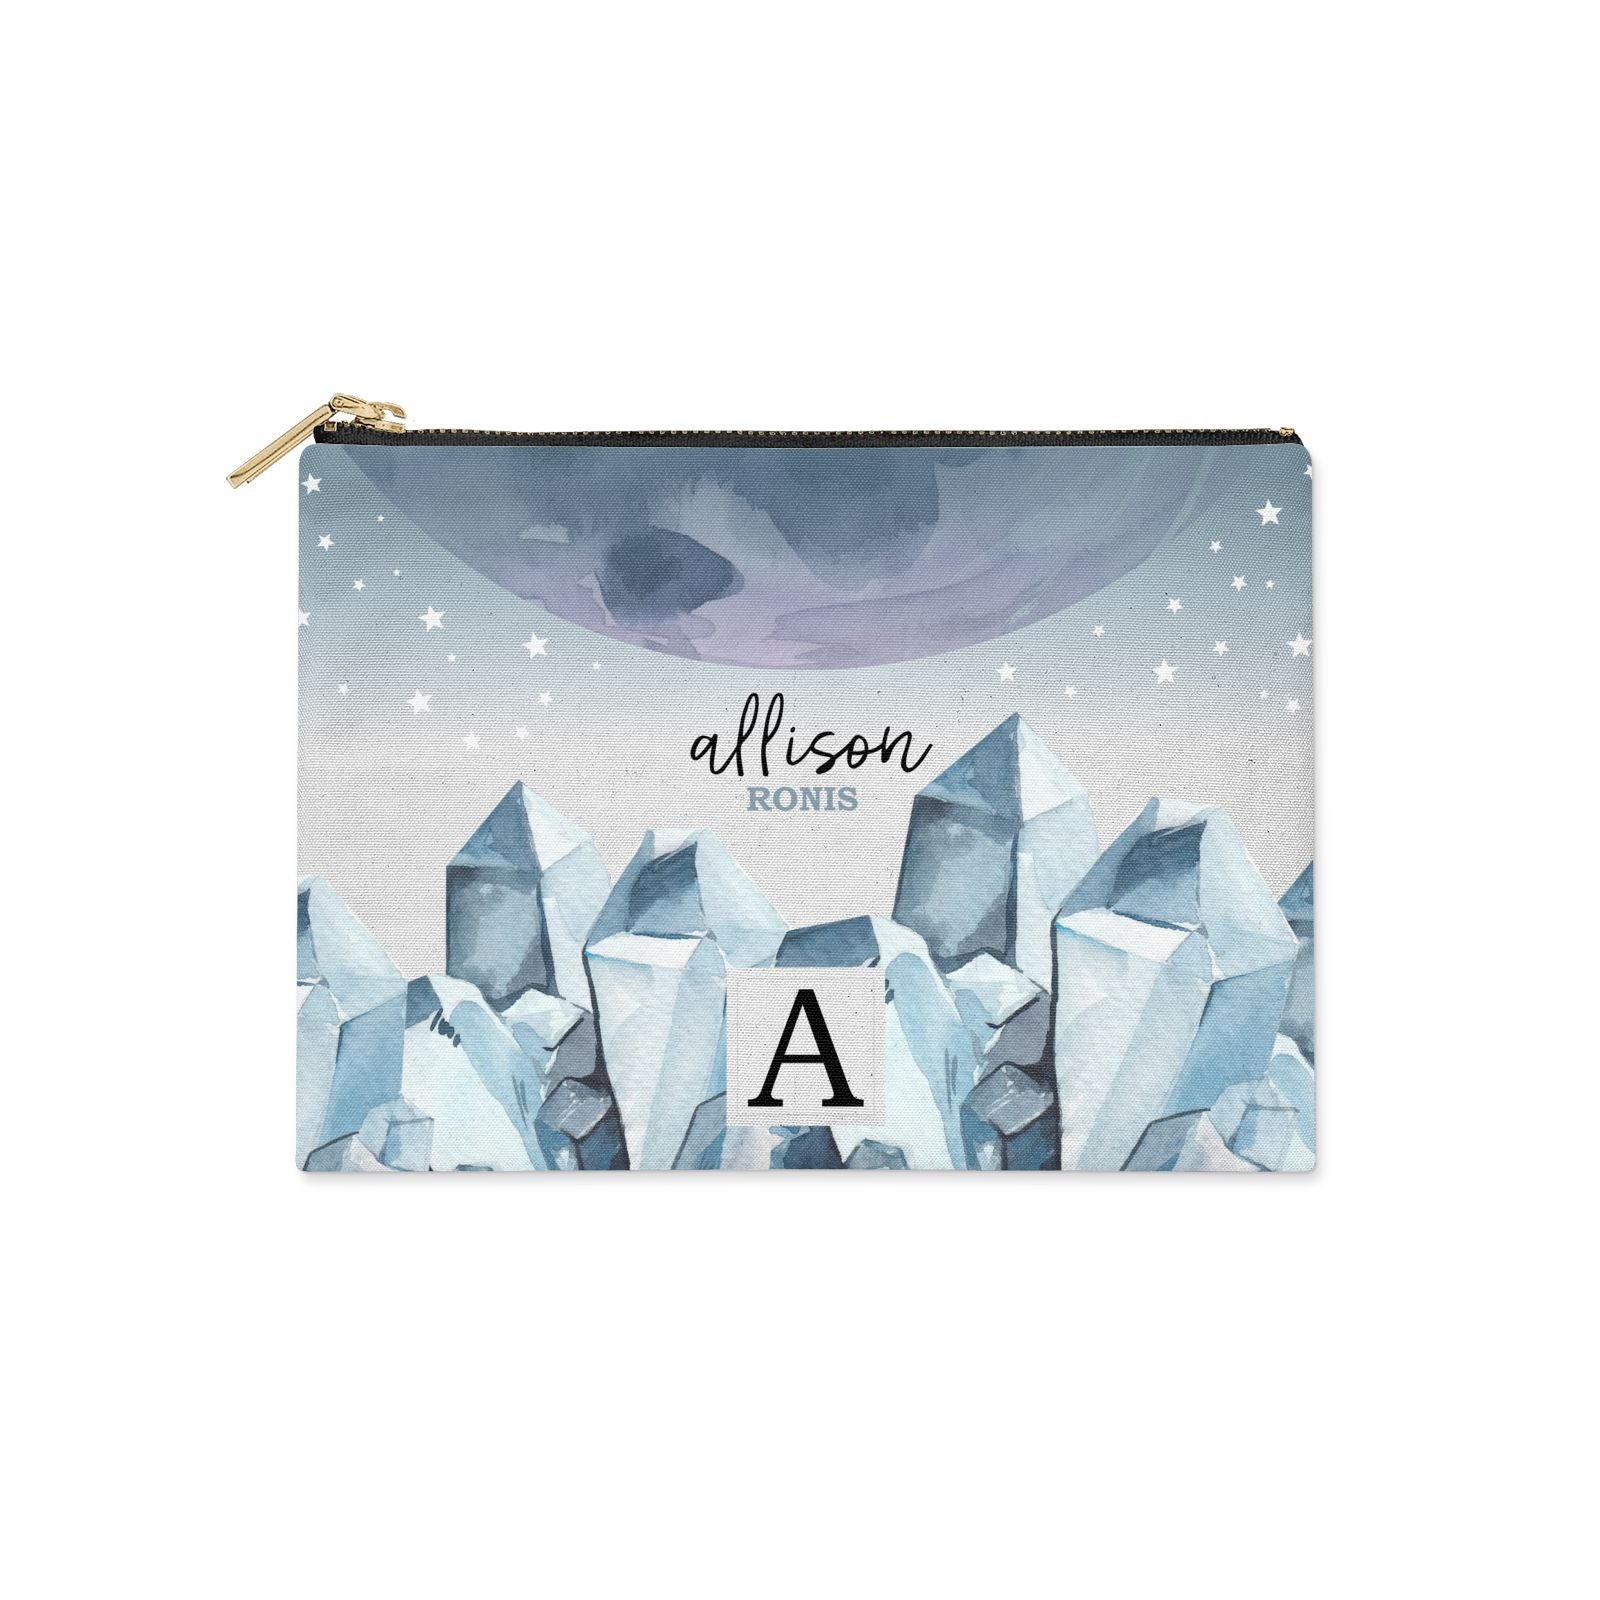 Lunar Crystals Personalised Name Clutch Bag Zipper Pouch